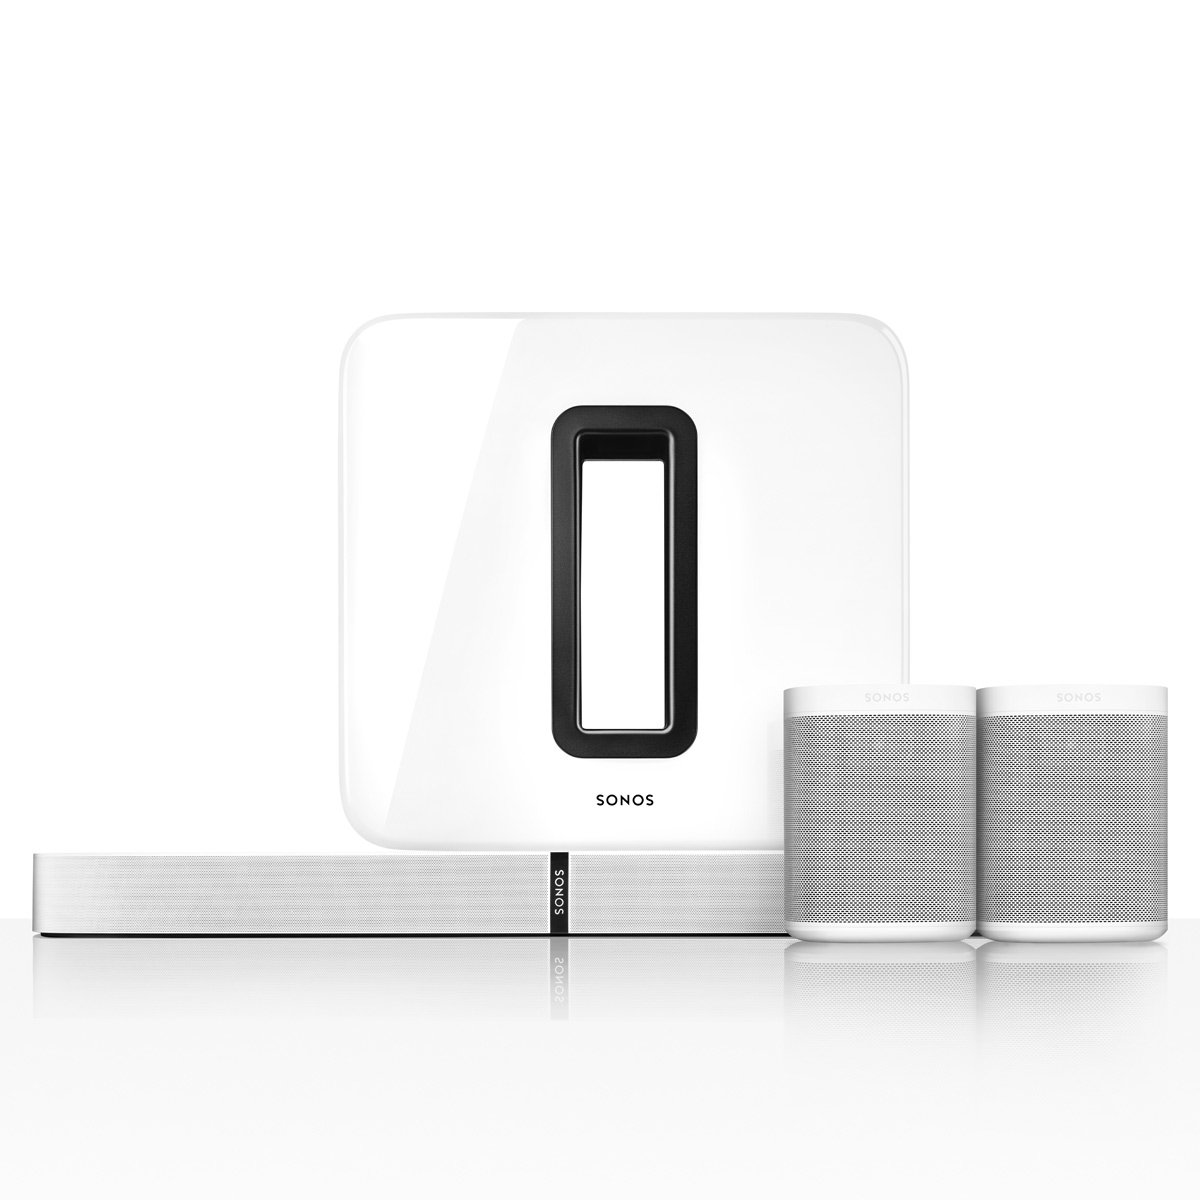 Sonos 5.1 PLAYBASE Home Theater System with Sonos ONE Streaming Speakers (Pair) and SUB Wireless Subwoofer (White)